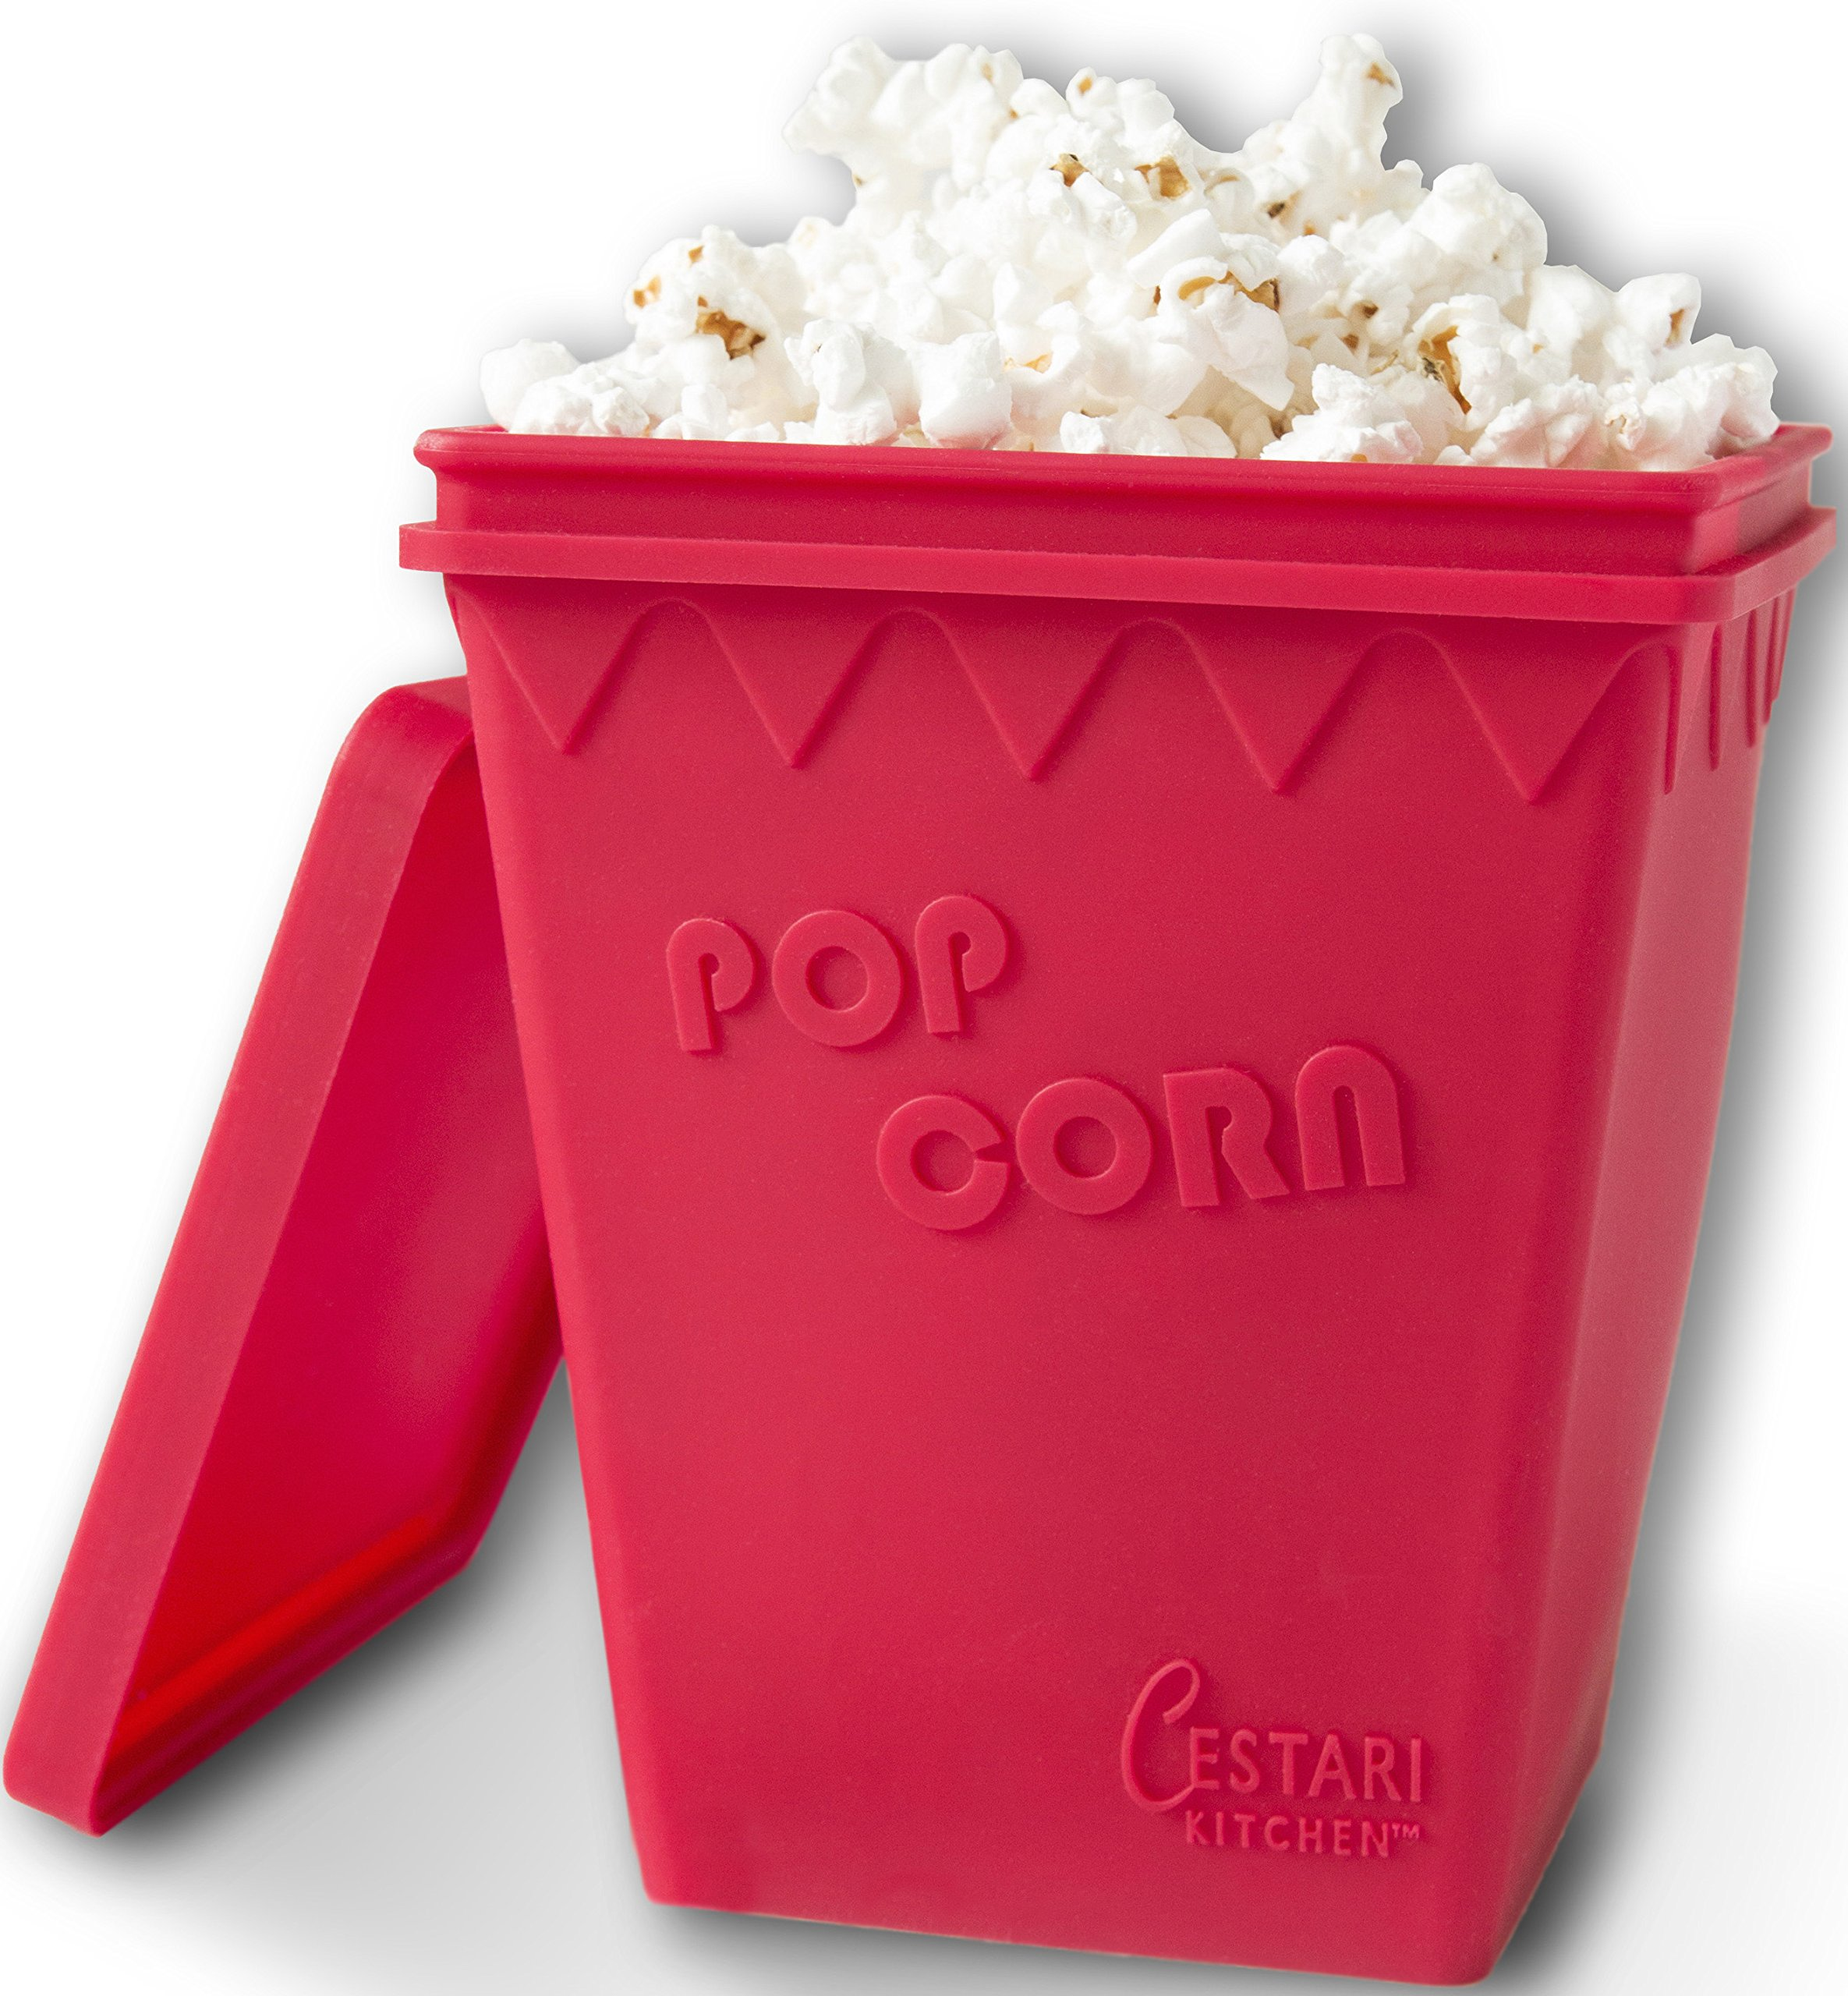 Microwave Popcorn Popper | Replaces Microwave Popcorn Bags | Enjoy Healthy Air Popped Popcorn - No Oil Needed | BPA Free Premium European Grade Silicone Popcorn Maker by Cestari Kitchen (Makes 8 Cups) by Cestari Kitchen